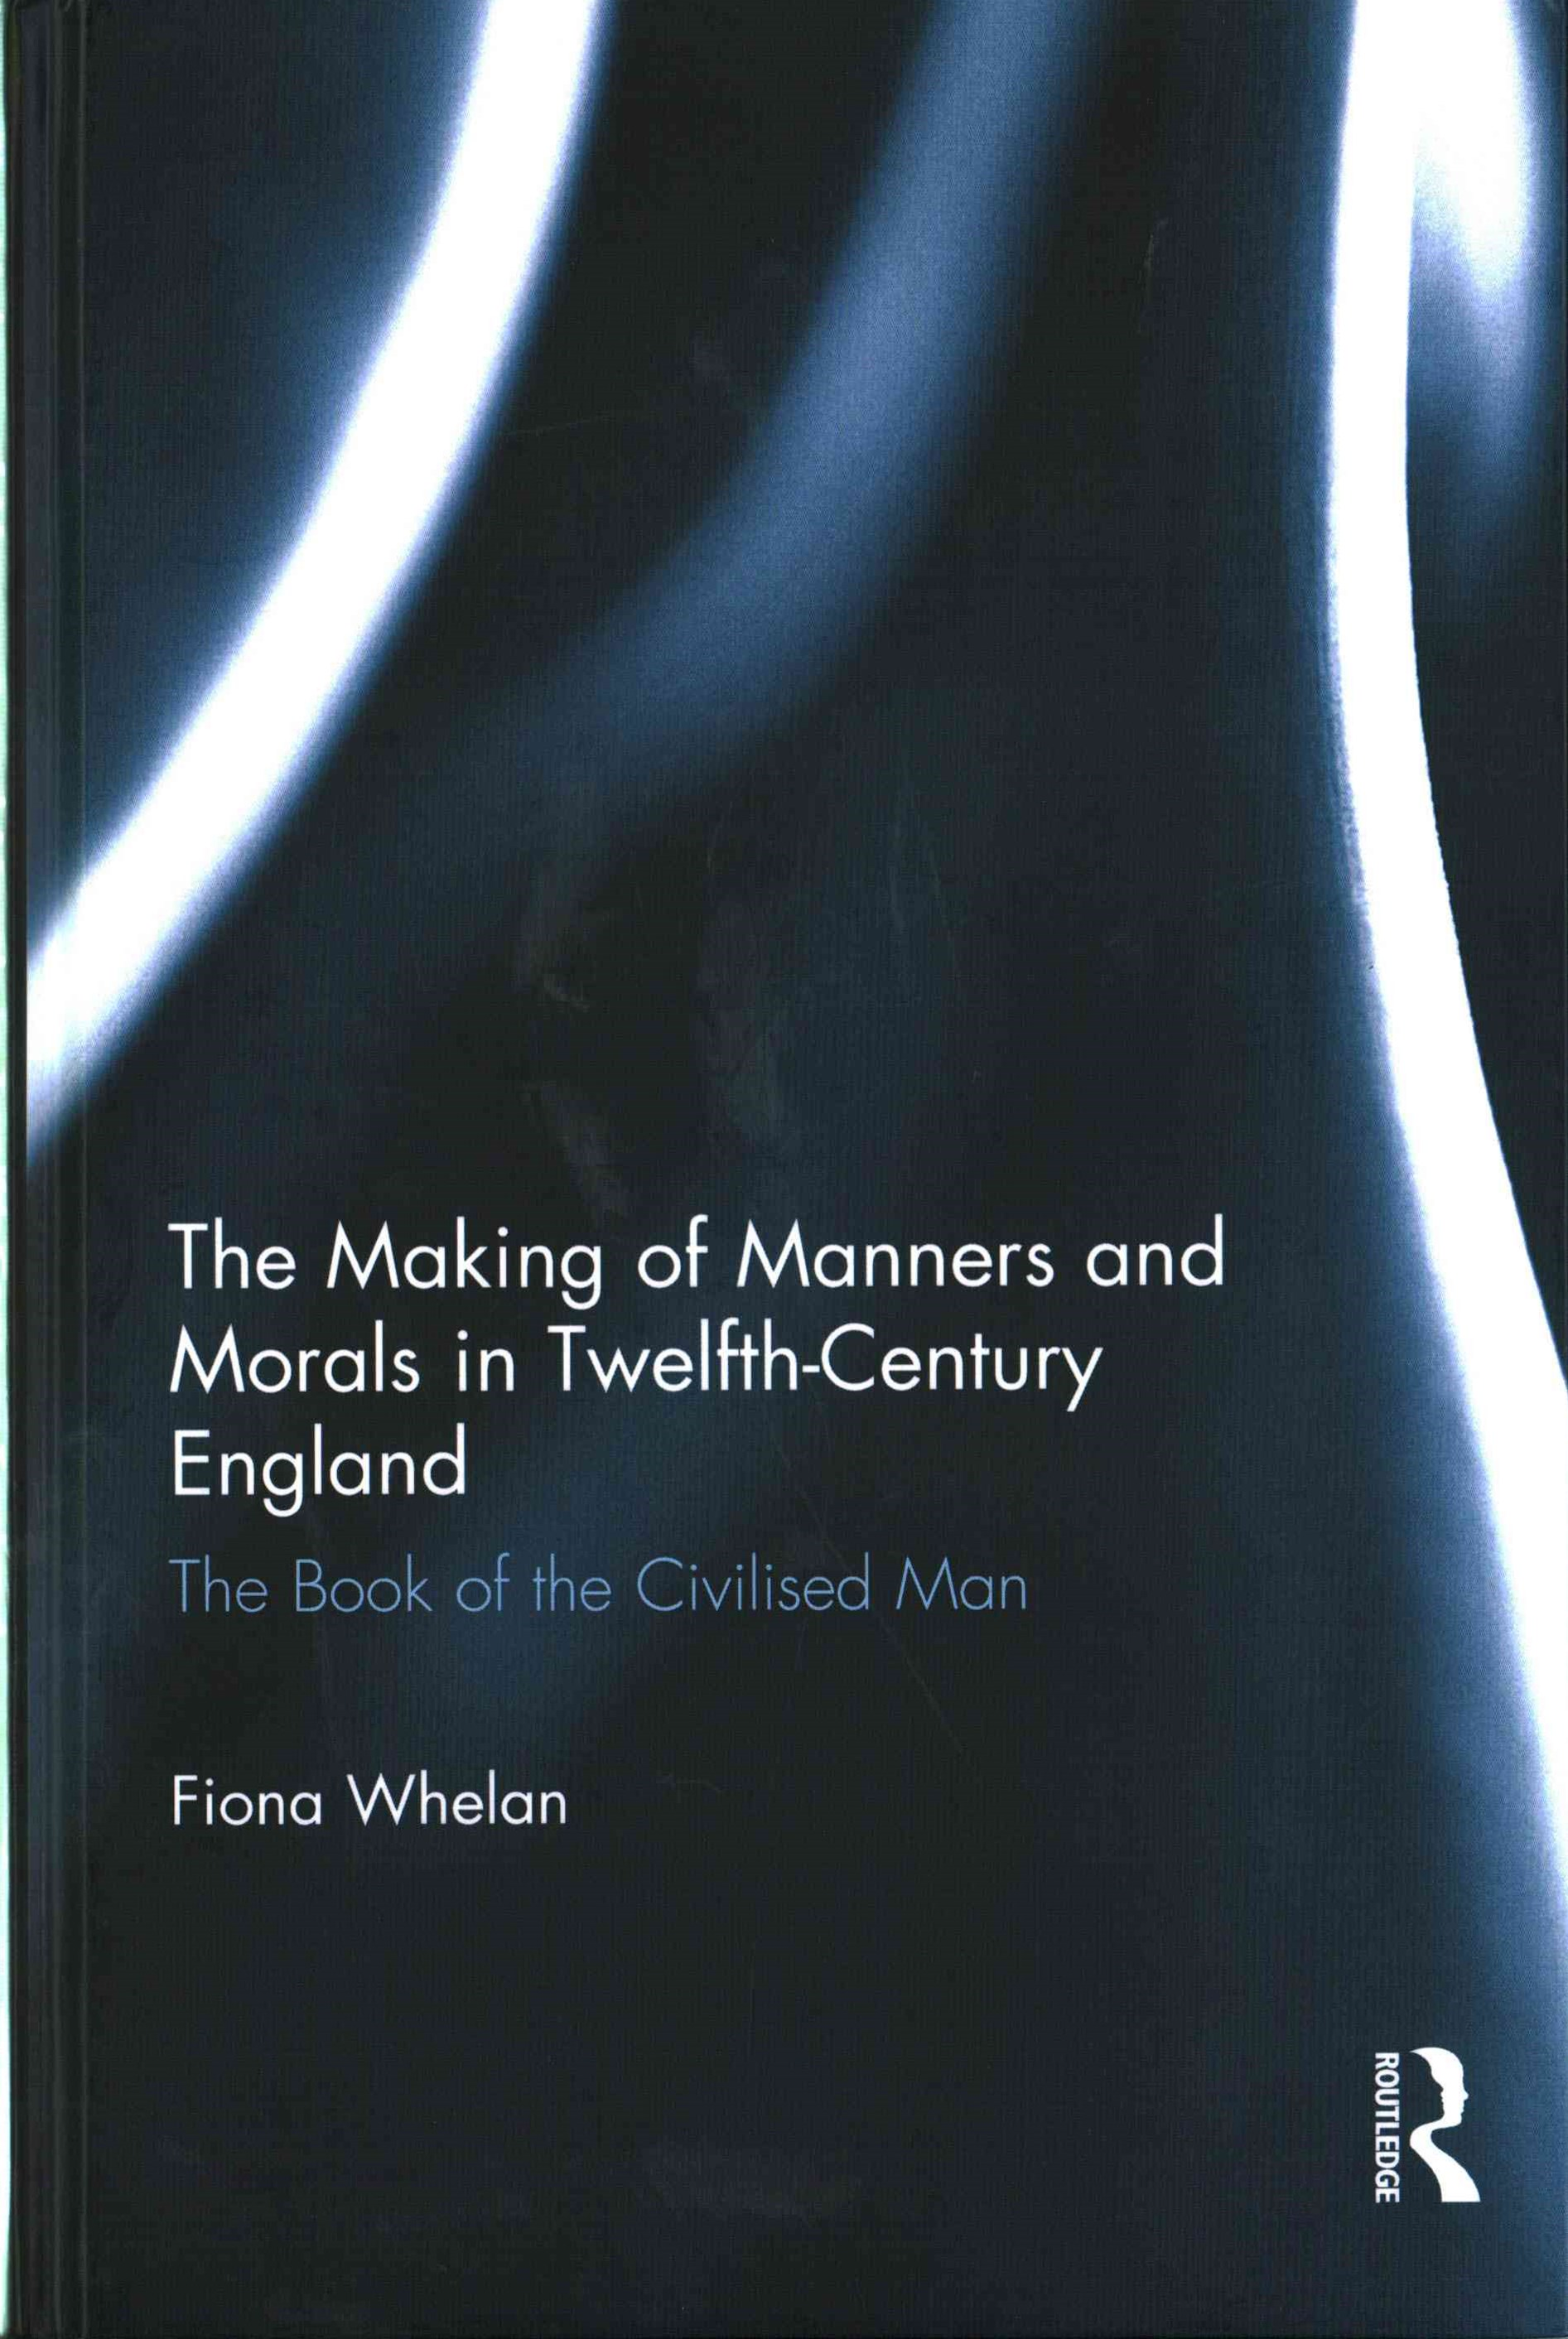 Making of Manners and Morals in Twelfth-Century England